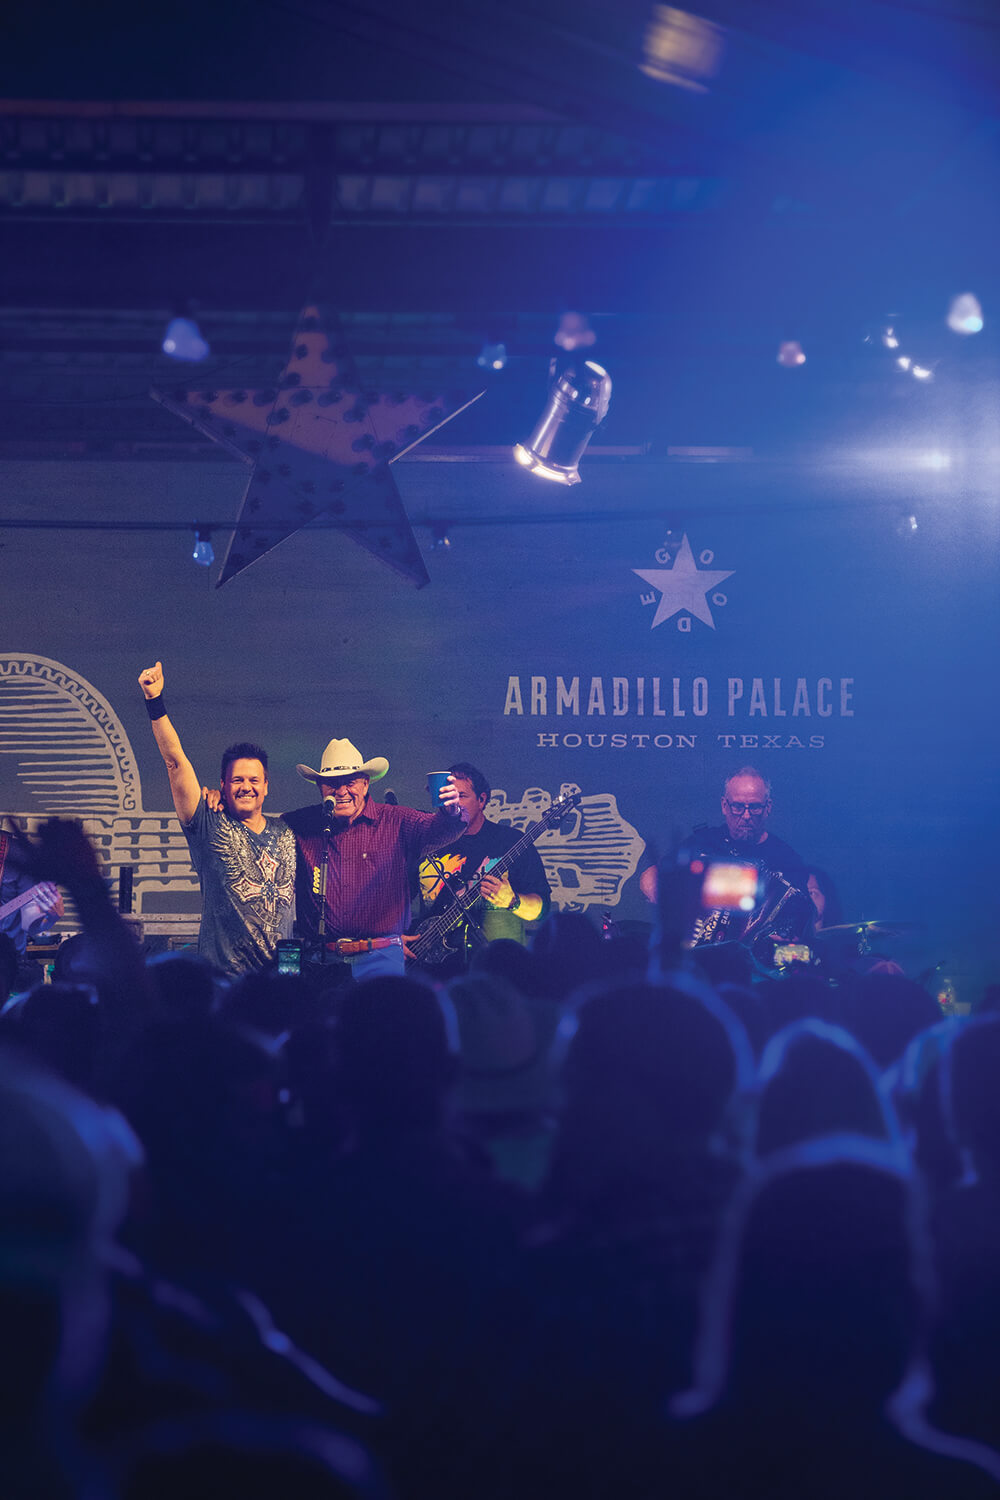 Roger Creager (left) and his father, Bill Creager, perform together at the Armadillo Palace in Houston, Texas on Dec. 28, 2019.